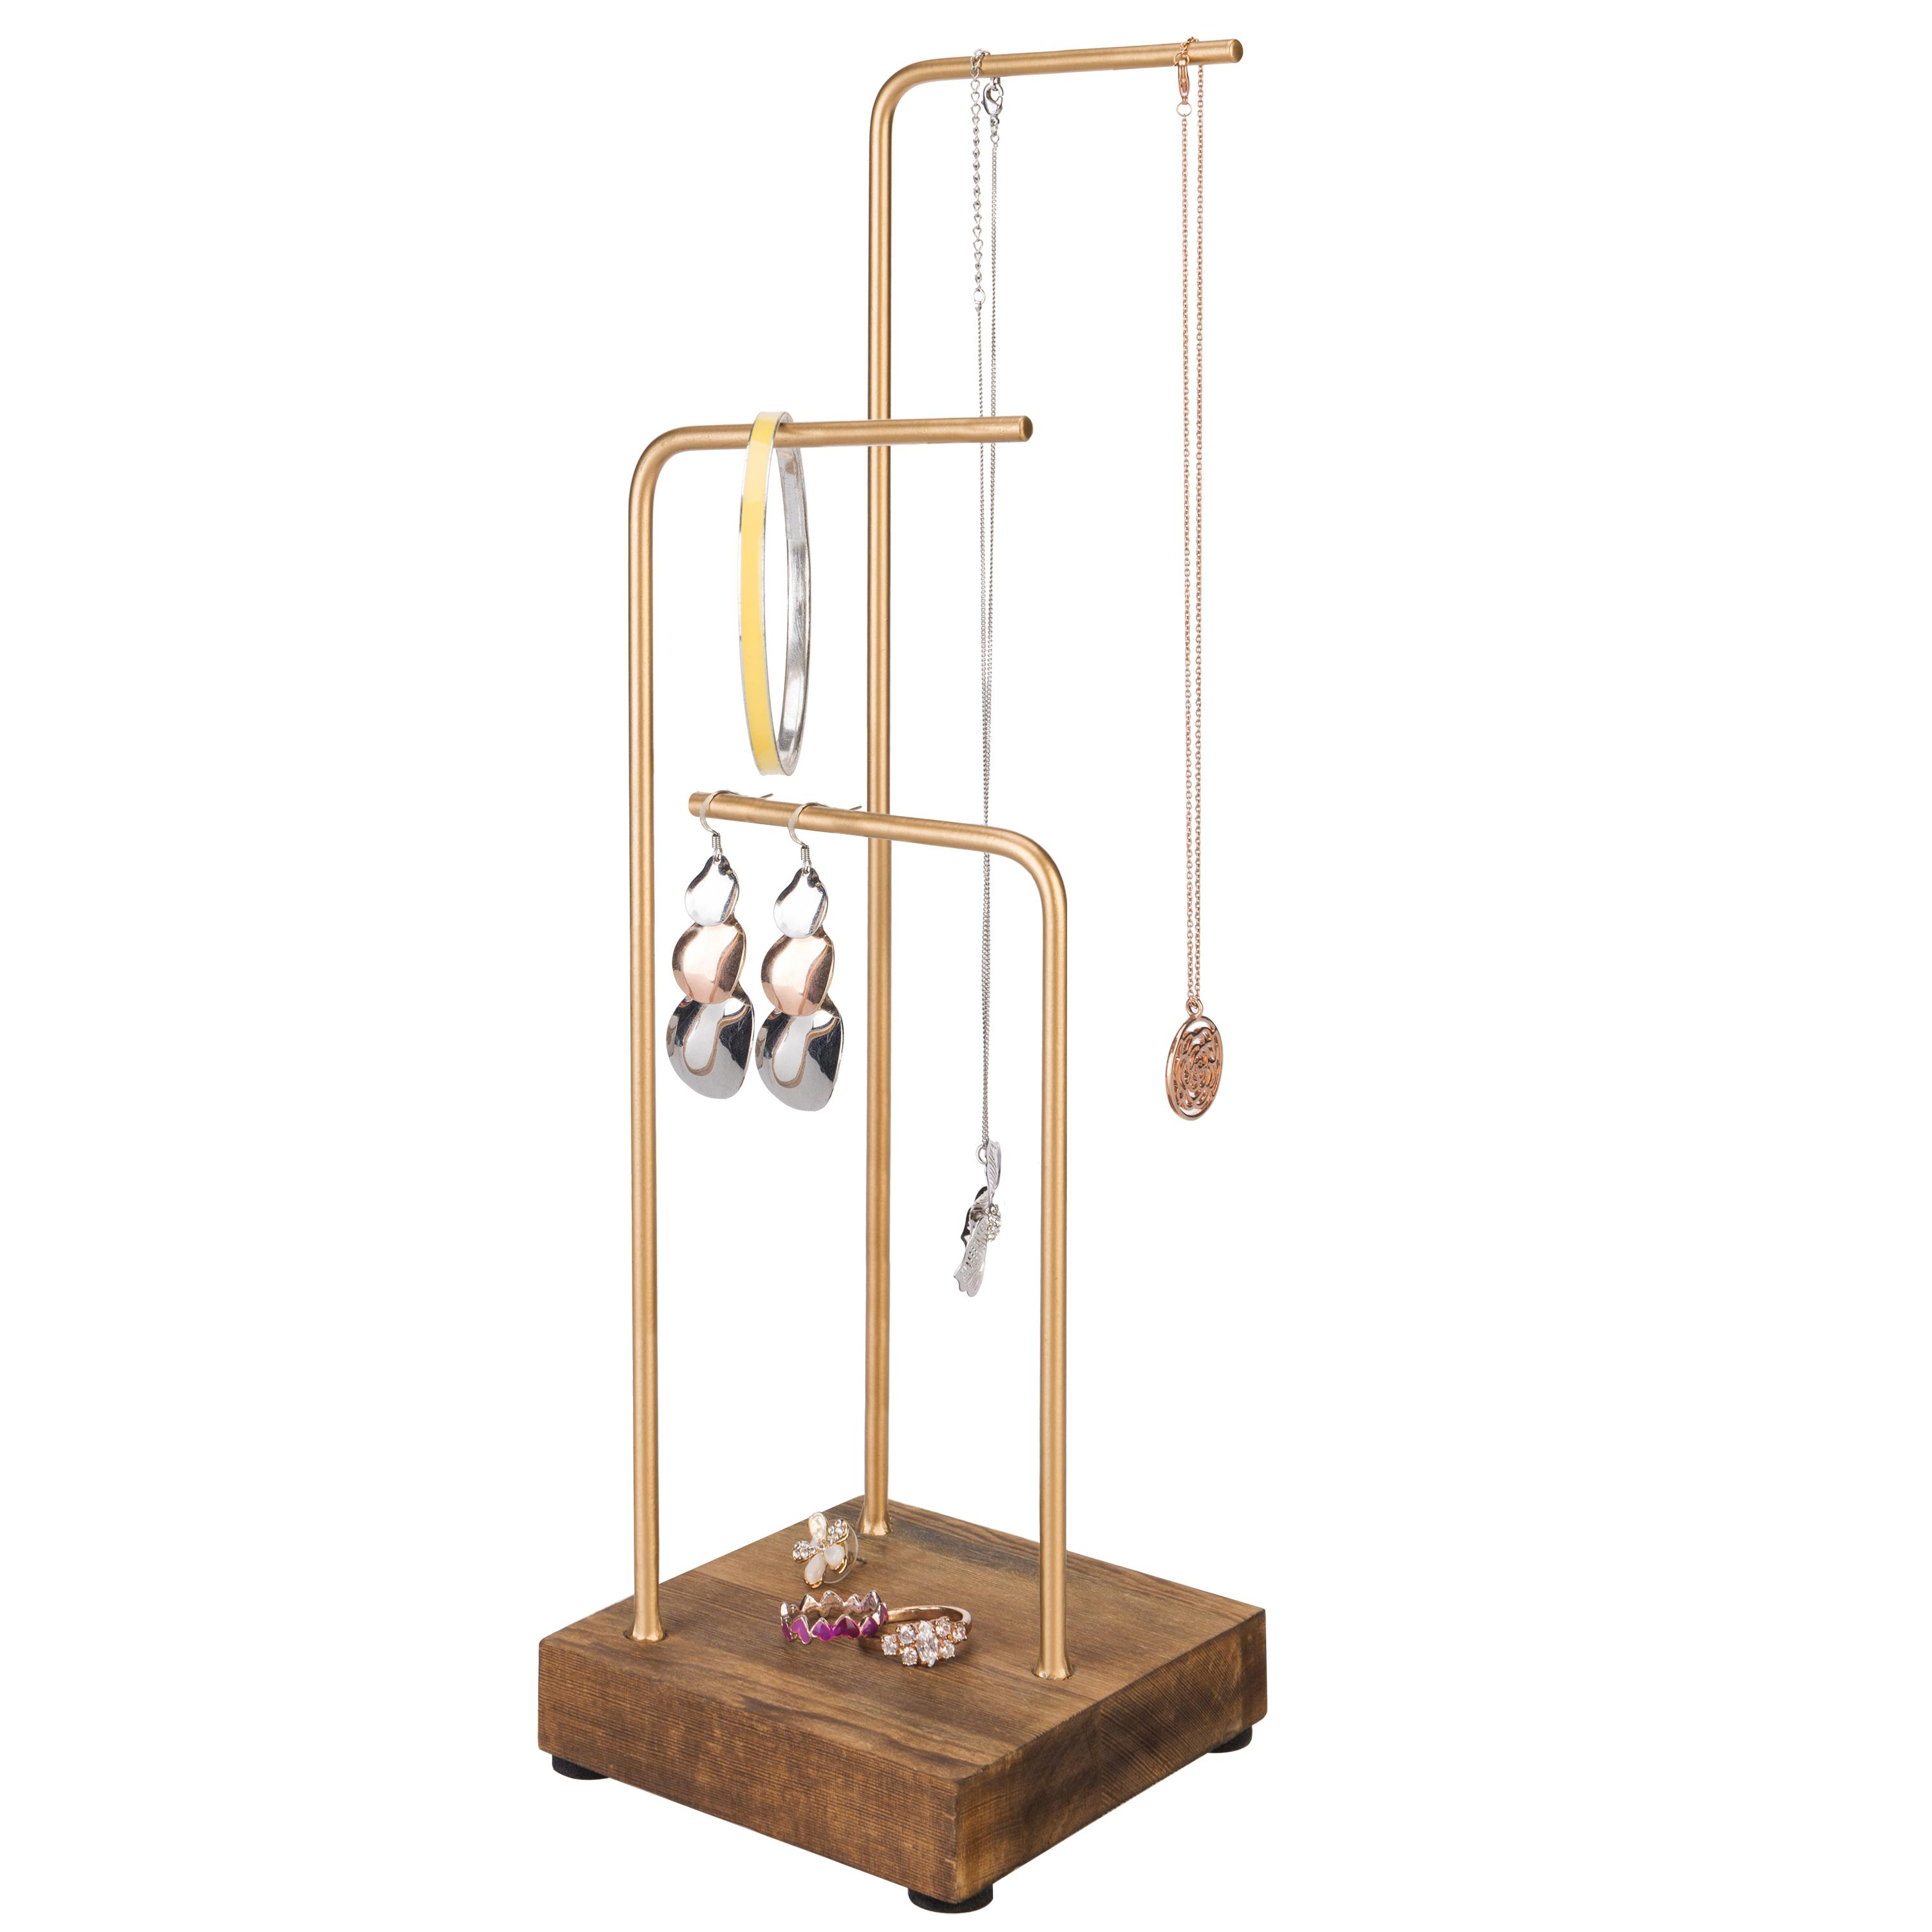 3 tier brass tone metal and rustic